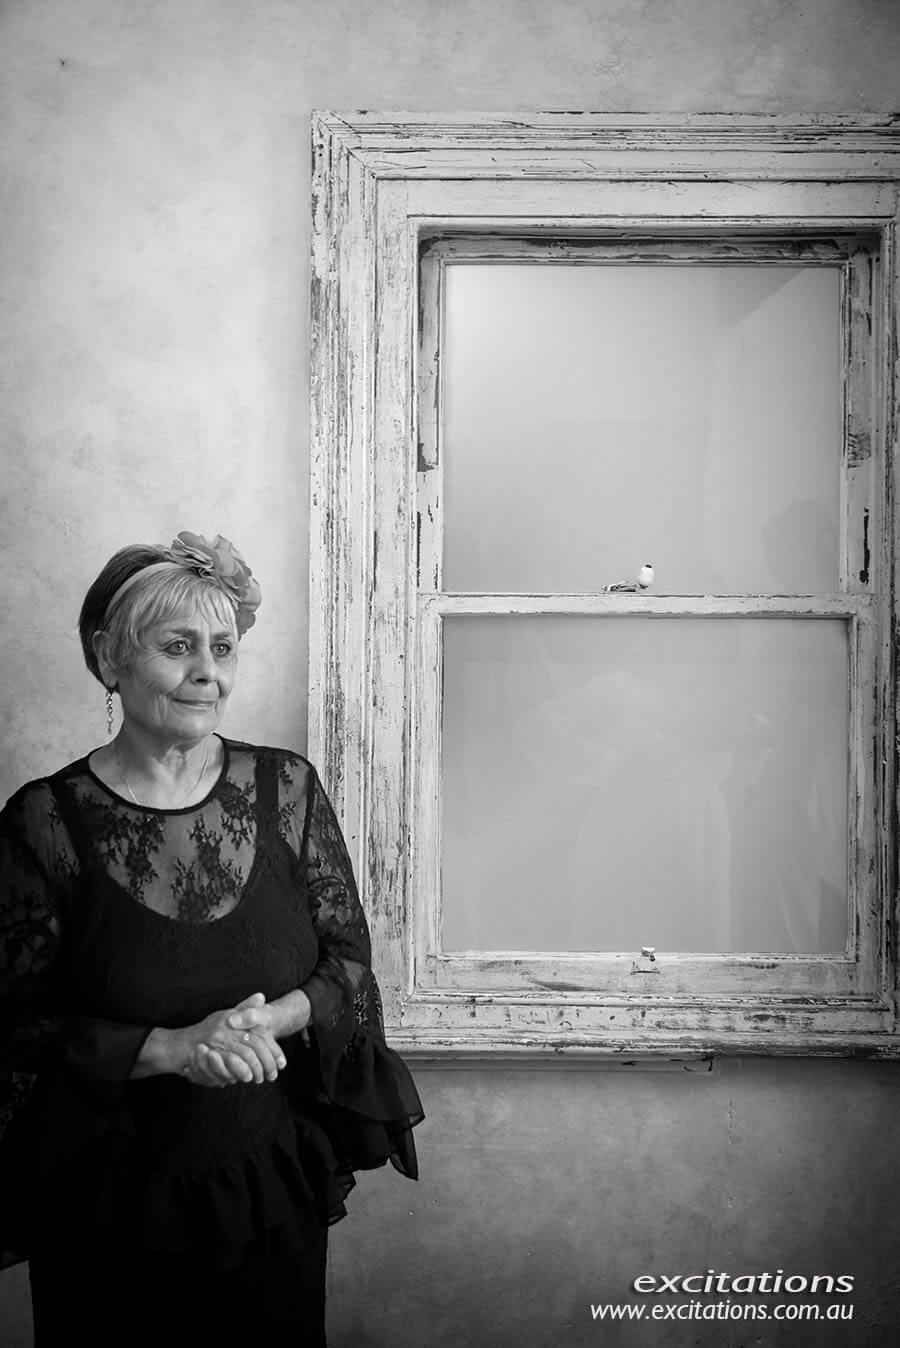 Mother of bride in candid photograph as she see her daughter in her wedding dress for the first time. Wedding photography by Excitations Mildura.